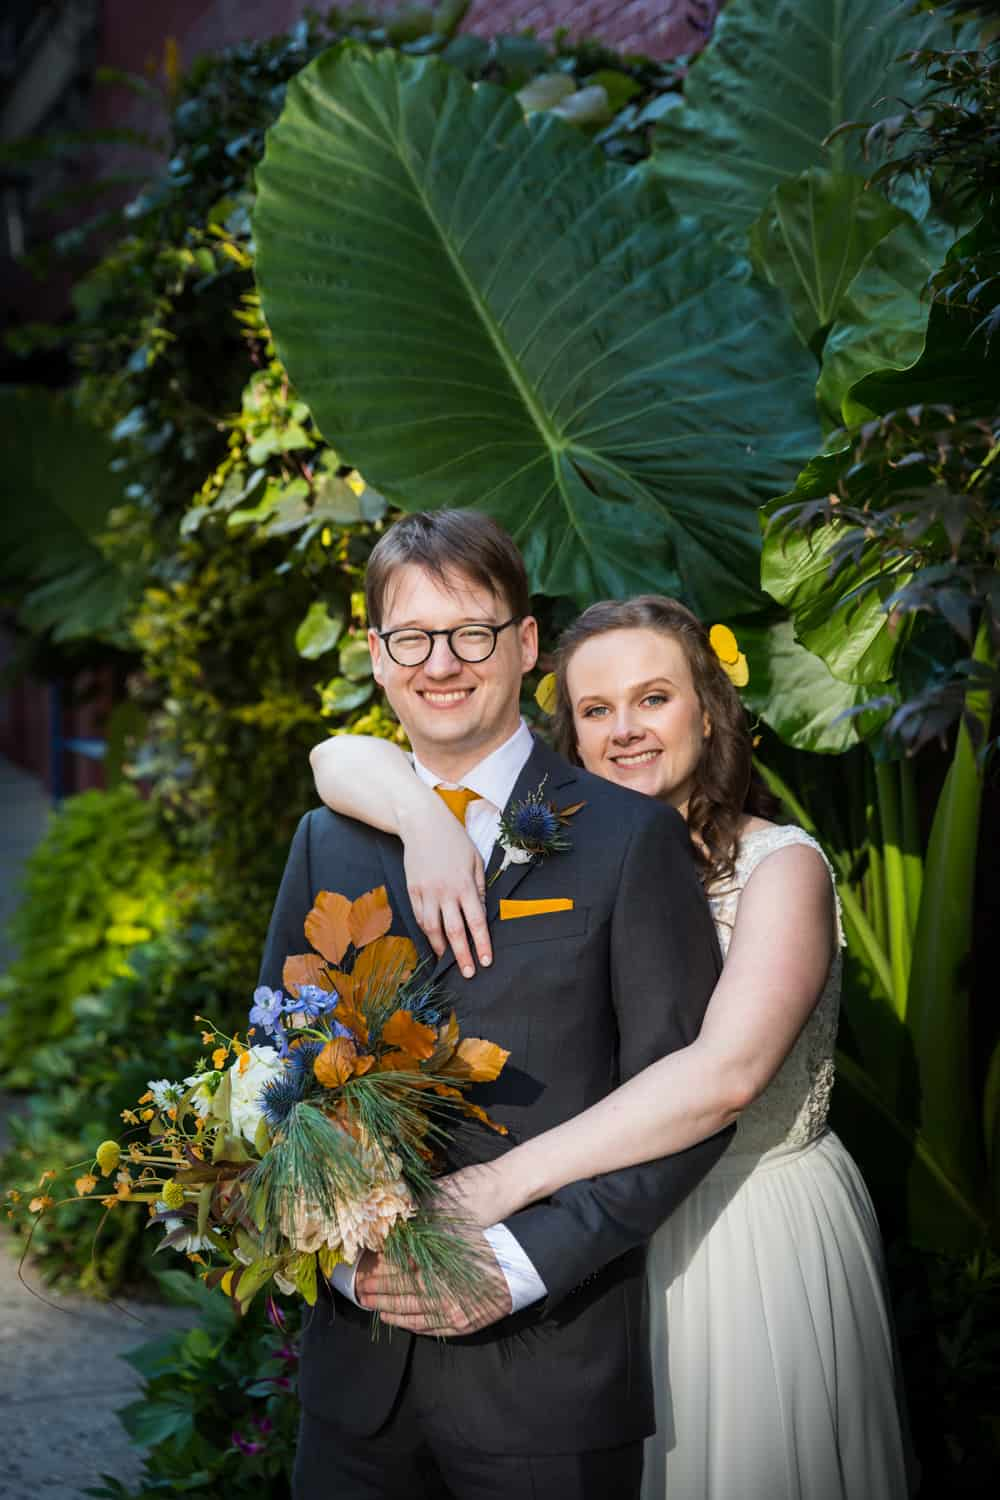 Bride and groom surrounded by plants for an article on Covid-19 wedding planning